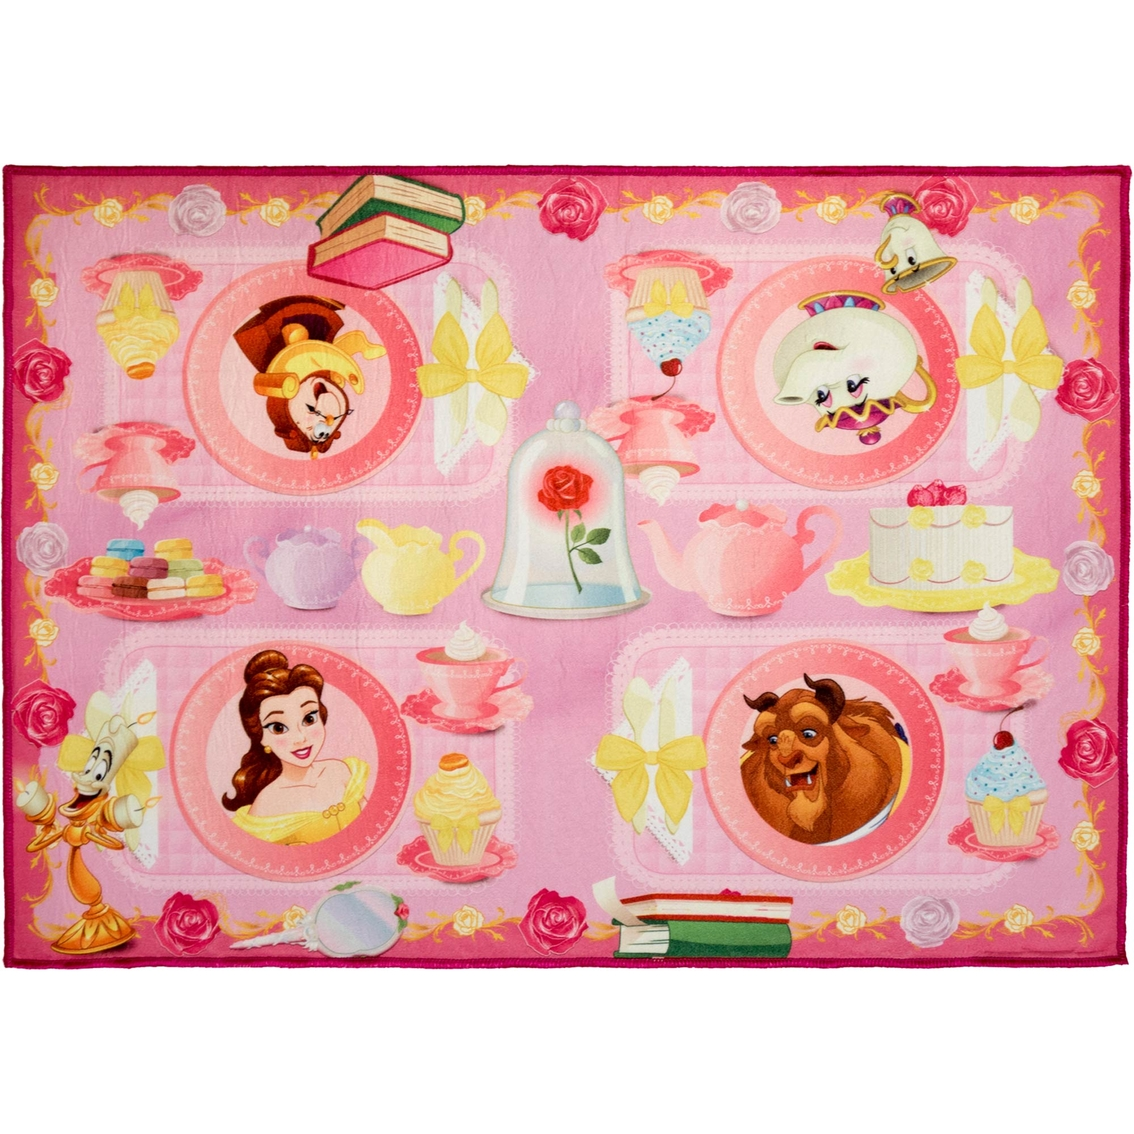 Beauty And The Beast Belle Tea Party Interactive Game Rug 31.5 X 44 ...